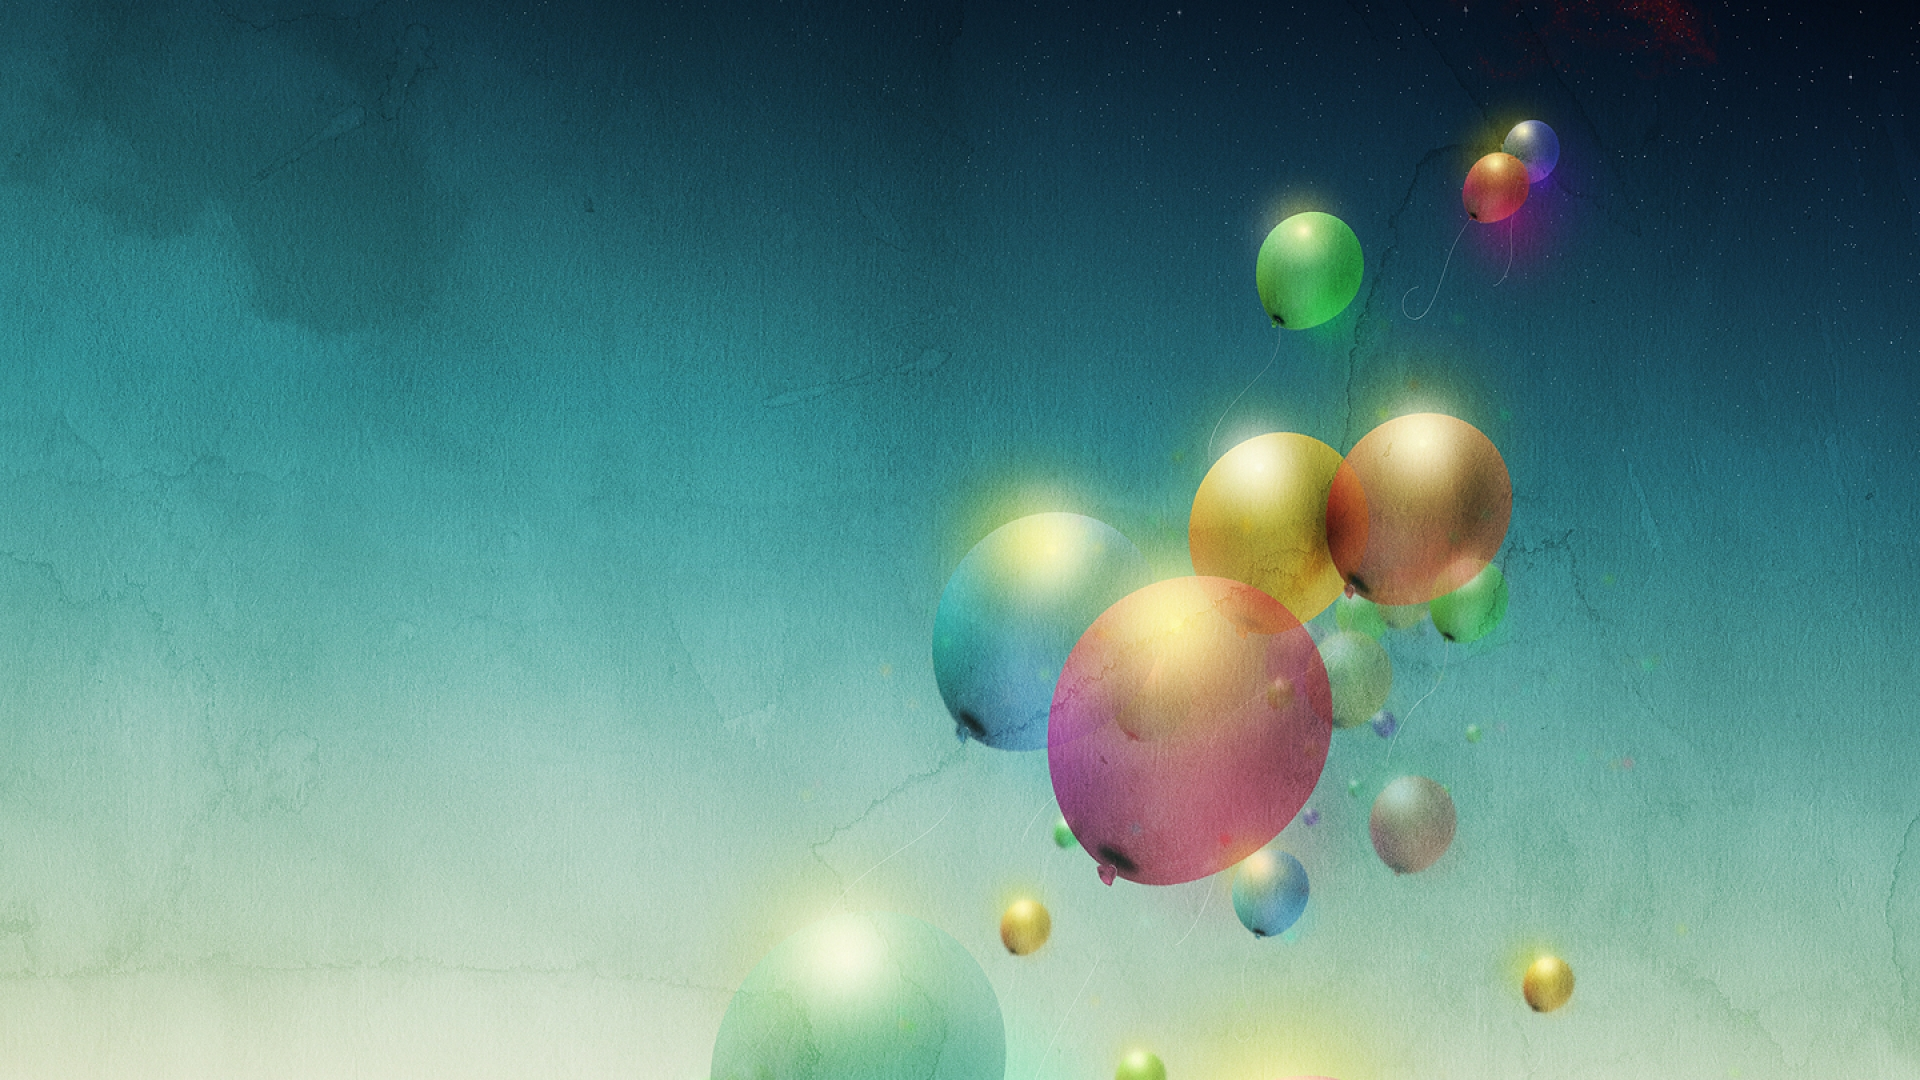 Balloon wallpaper